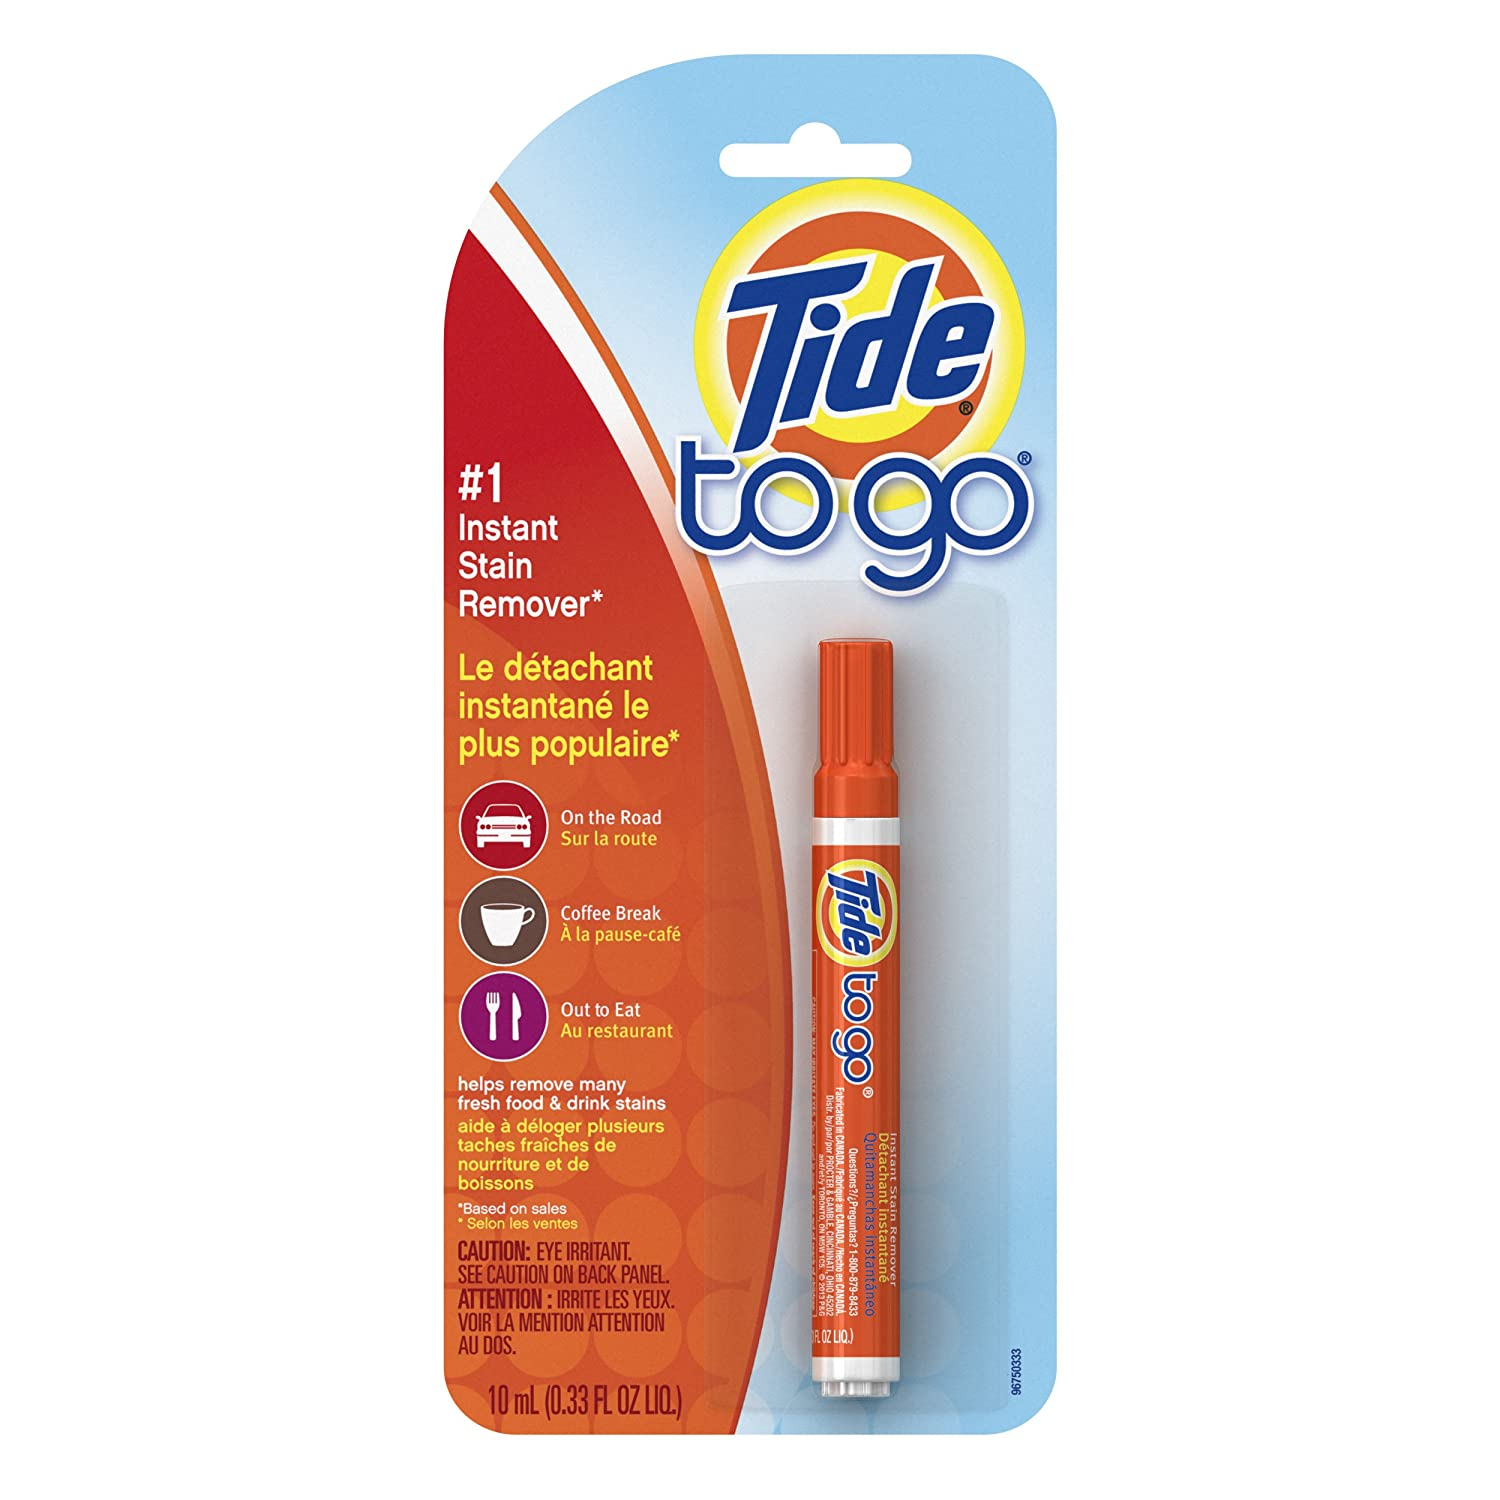 Tide To Go Instant Stain Remover, 1 count